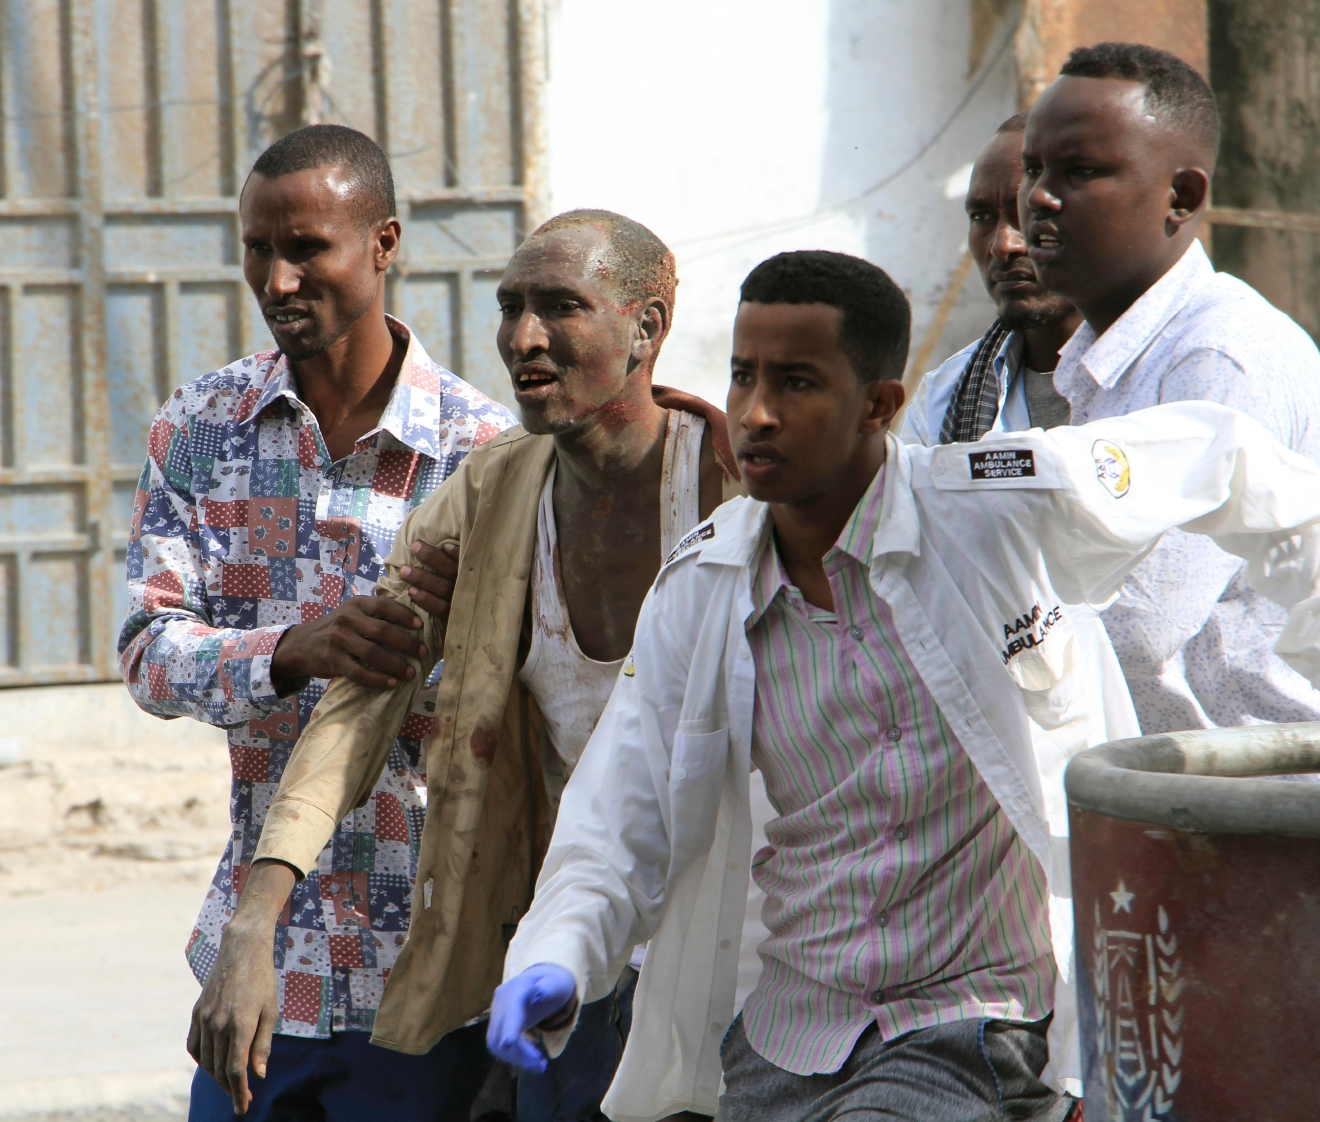 Deputy Killed 4 Others Wounded In Ambush Attack: Extremist Gunmen Storm Hotel In Somali Capital, At Least 8